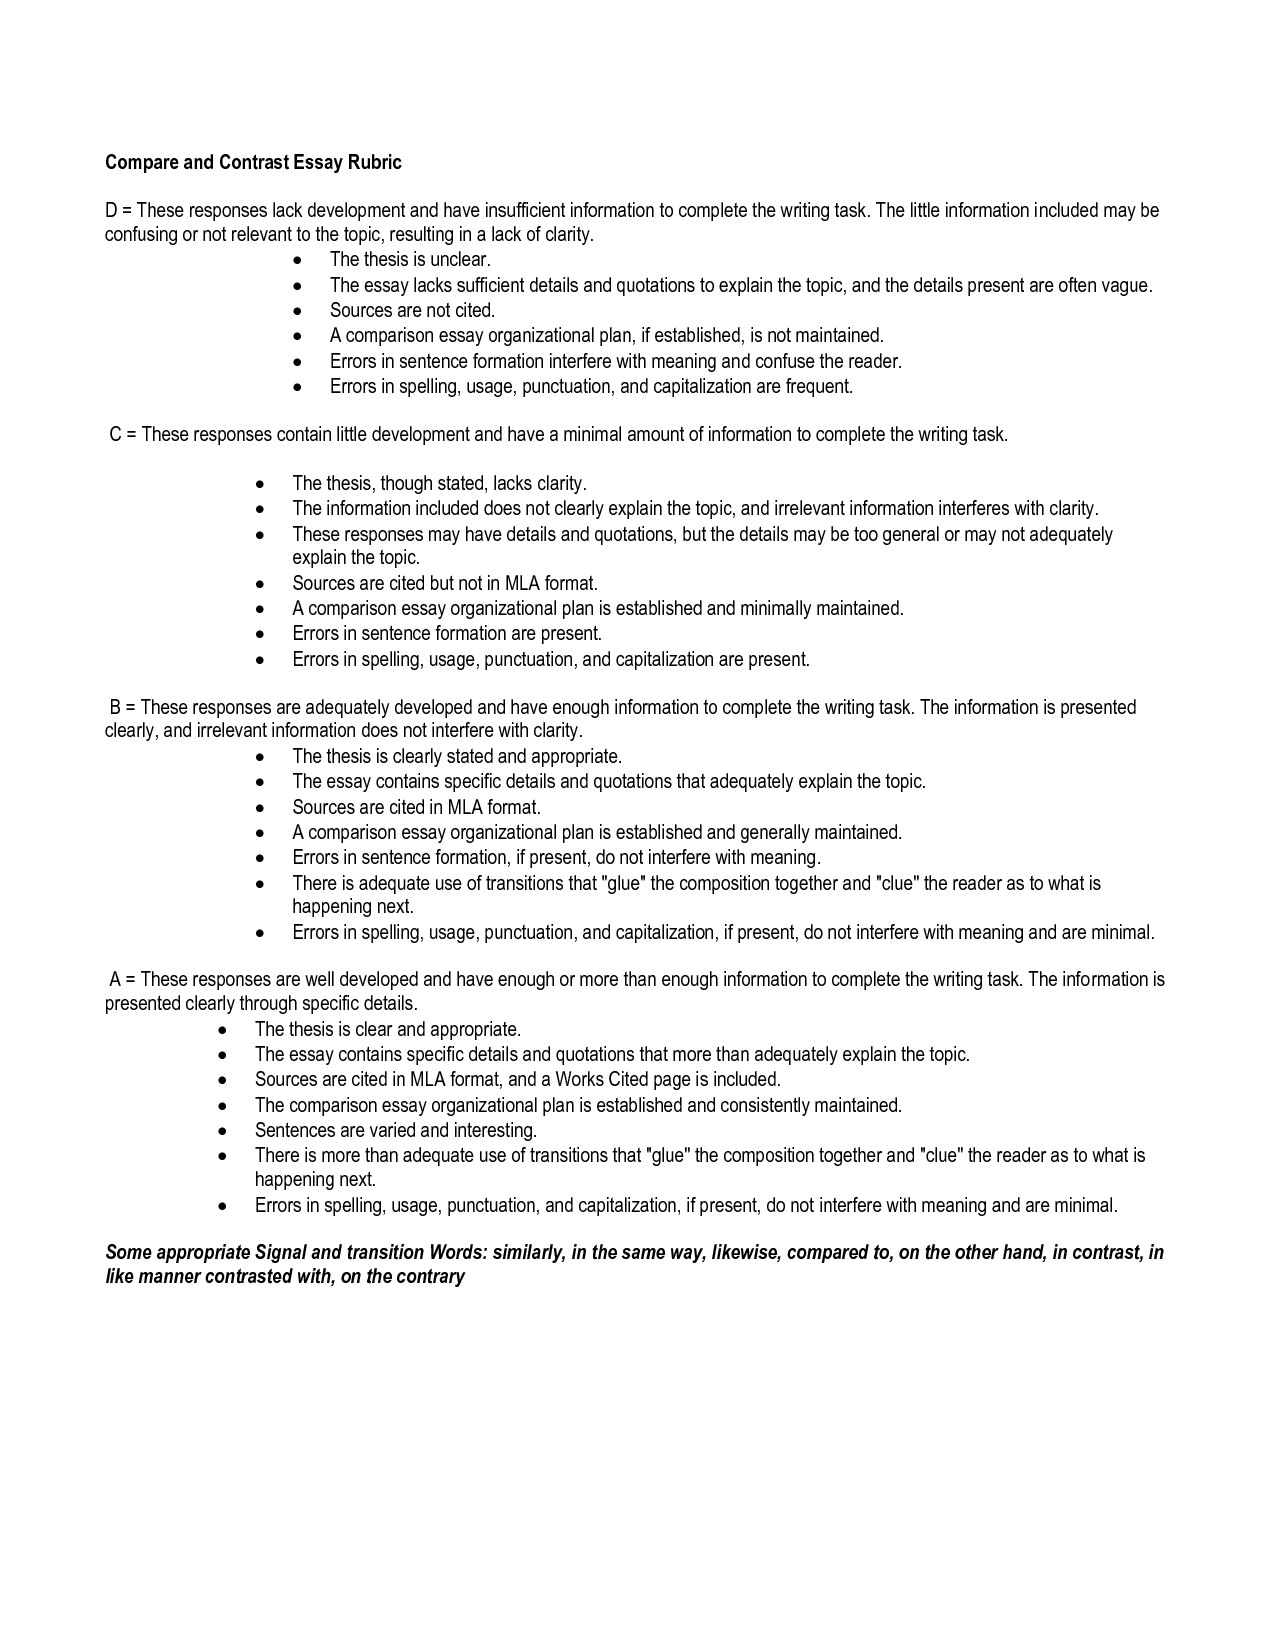 Compare And Contrast Essay Outline Template  Write